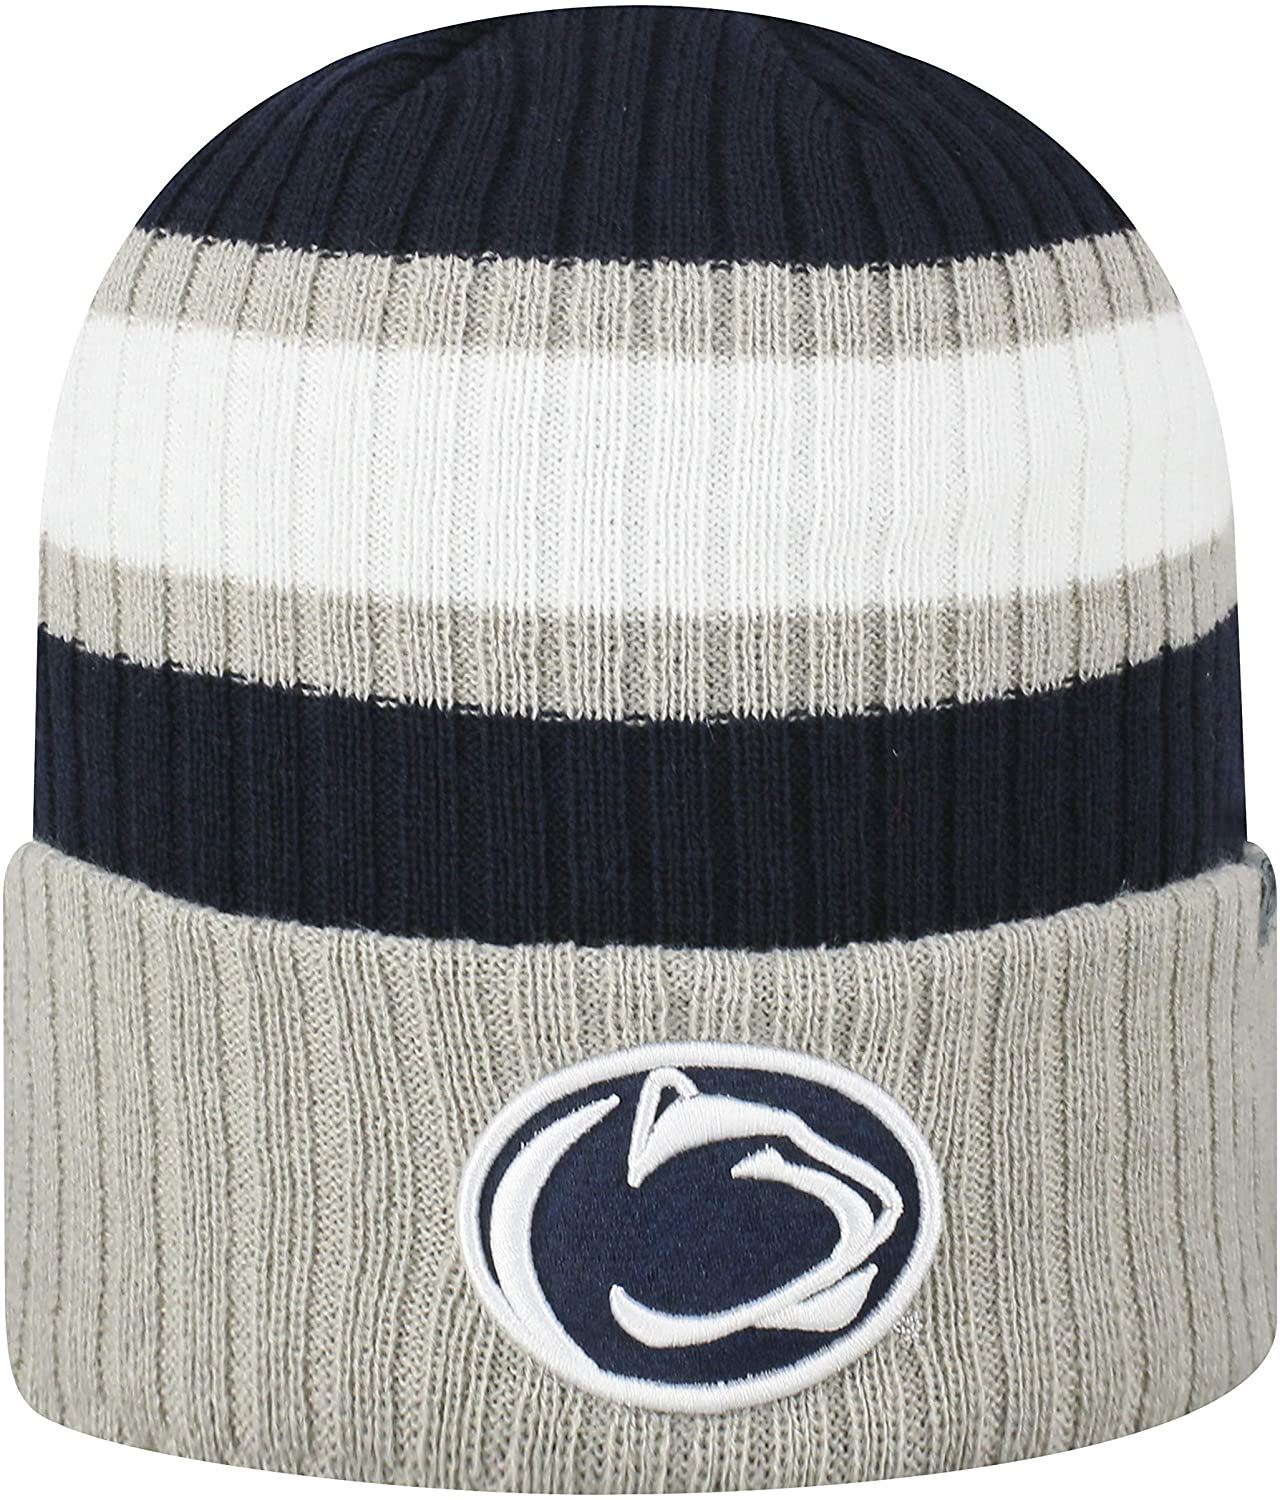 Top of the World NCAA Sub Zero Cuffed Knit Beanie Hat